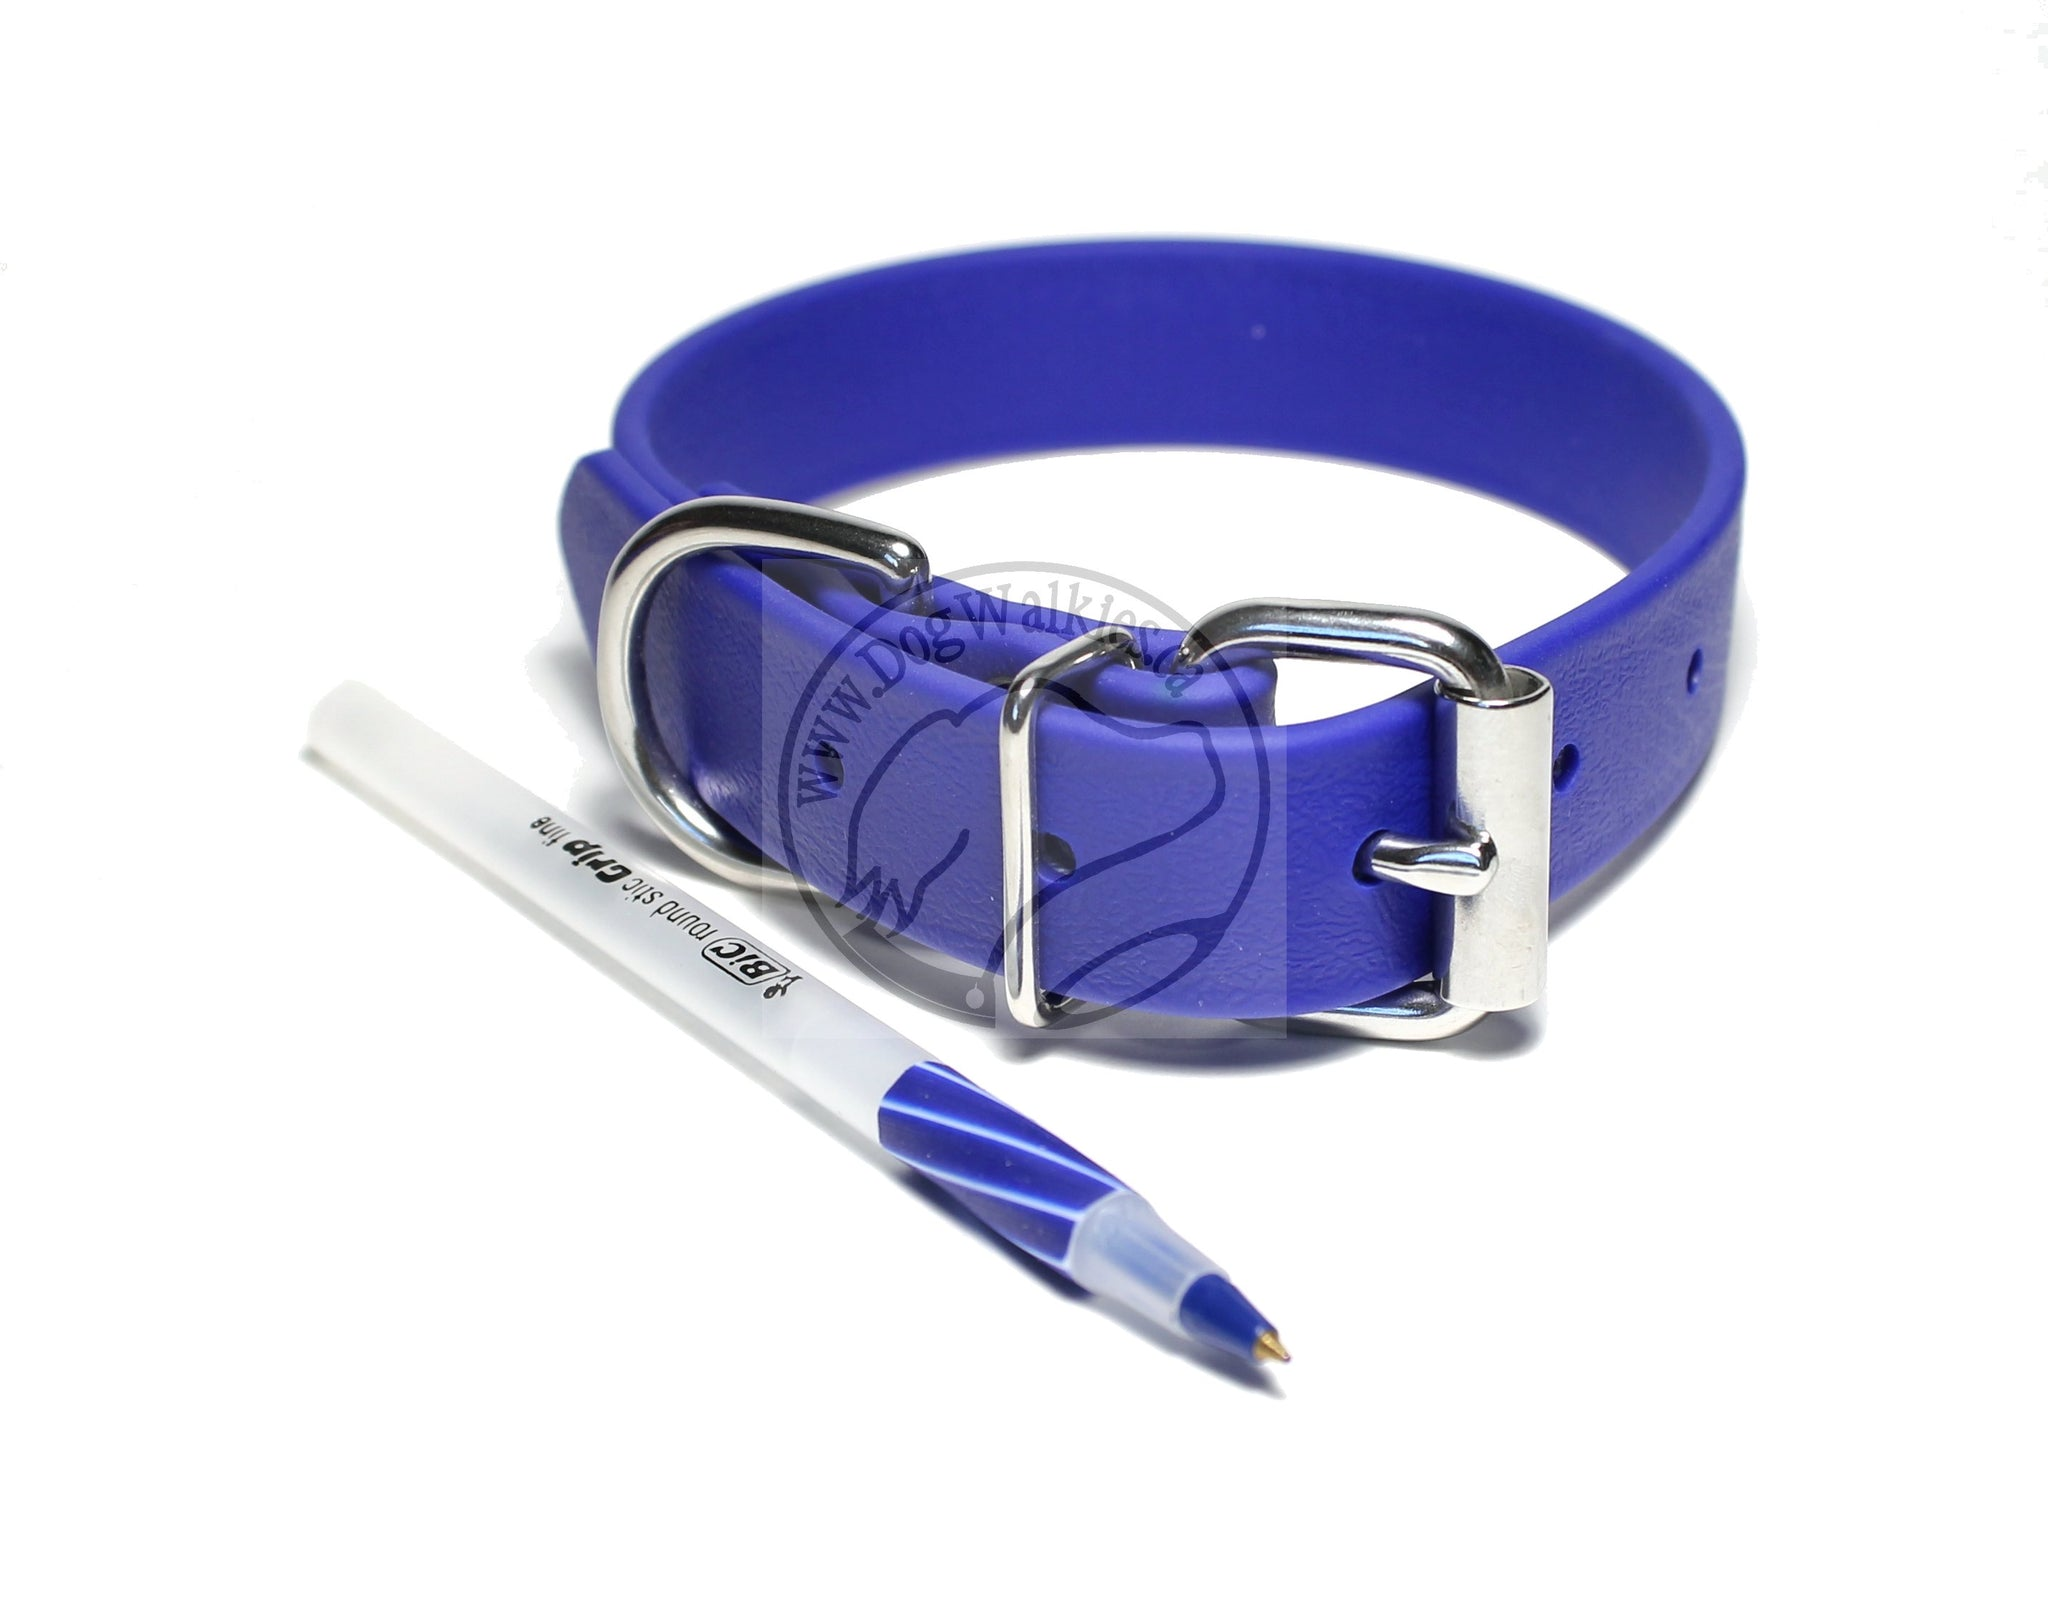 Royal Blue Biothane Dog Collar - 1 inch (25mm) wide